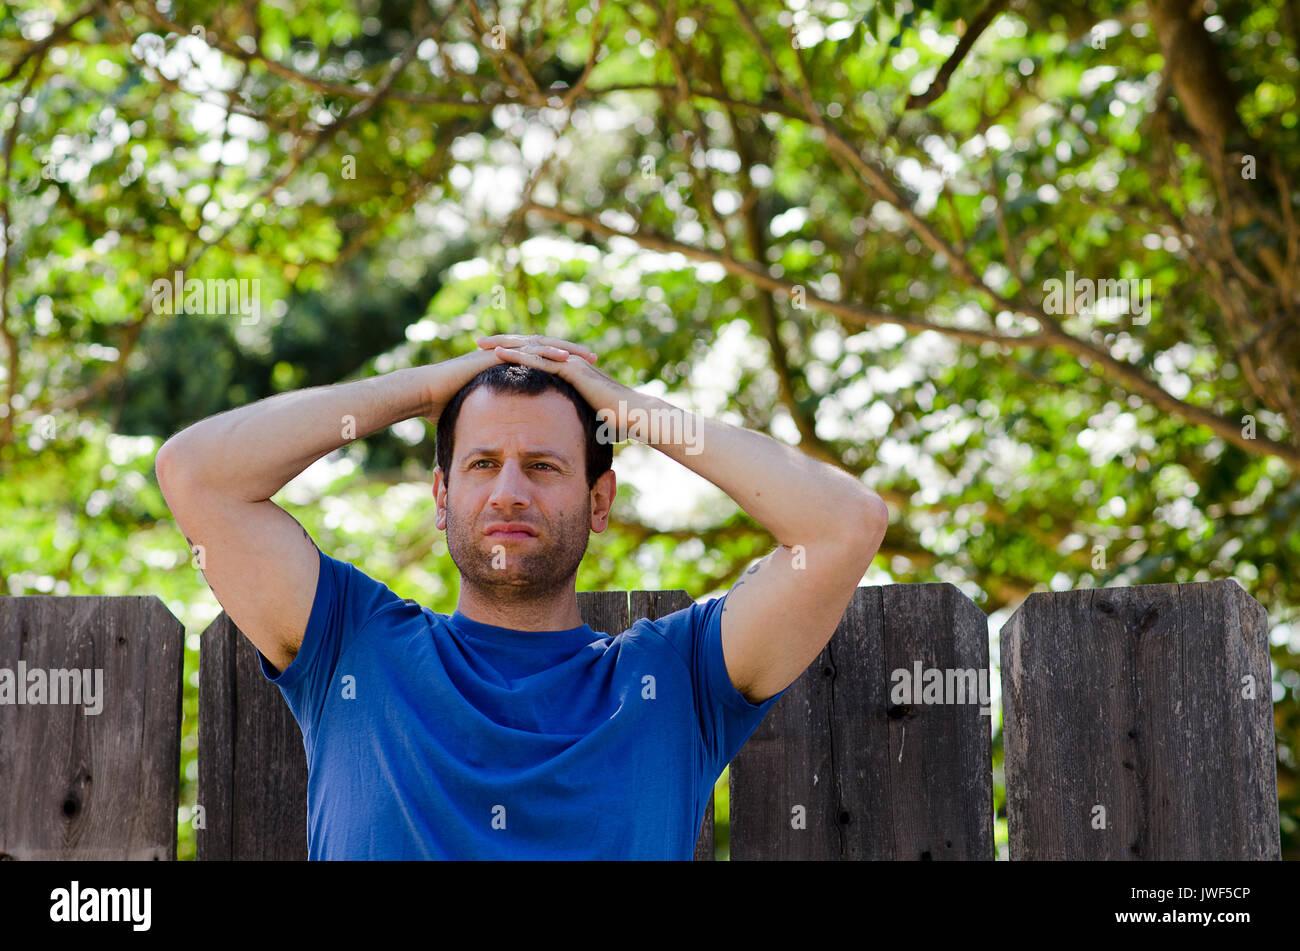 Man with his hand on his head outdoors curious about what the New Year will hold for him. - Stock Image